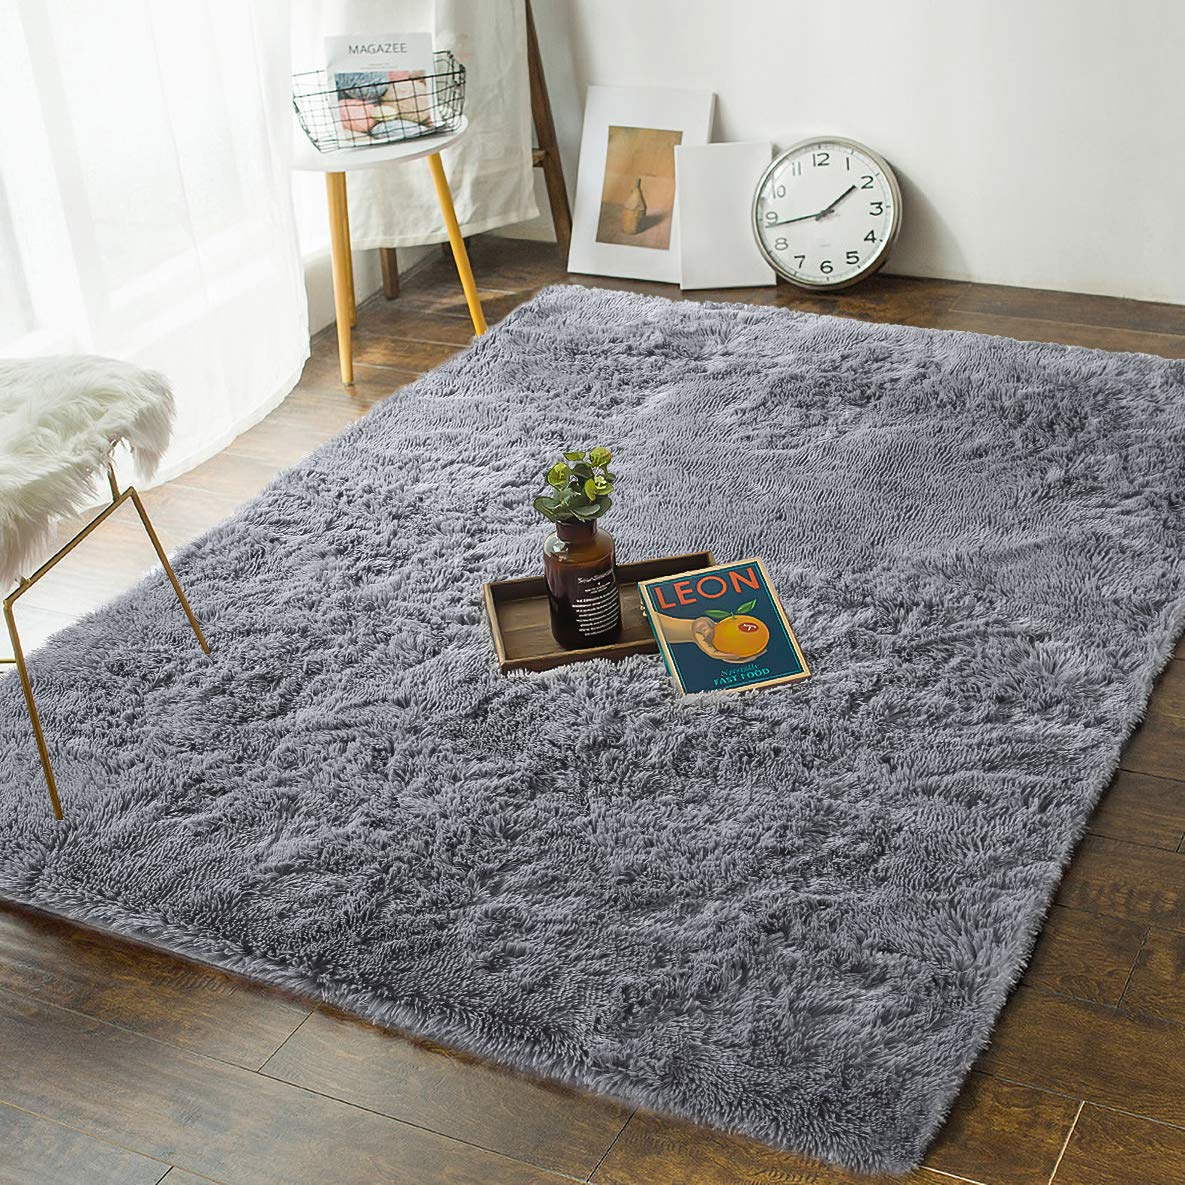 And Beyond + Soft Bedroom Rugs - 4' x 5.3' Shaggy Floor ...